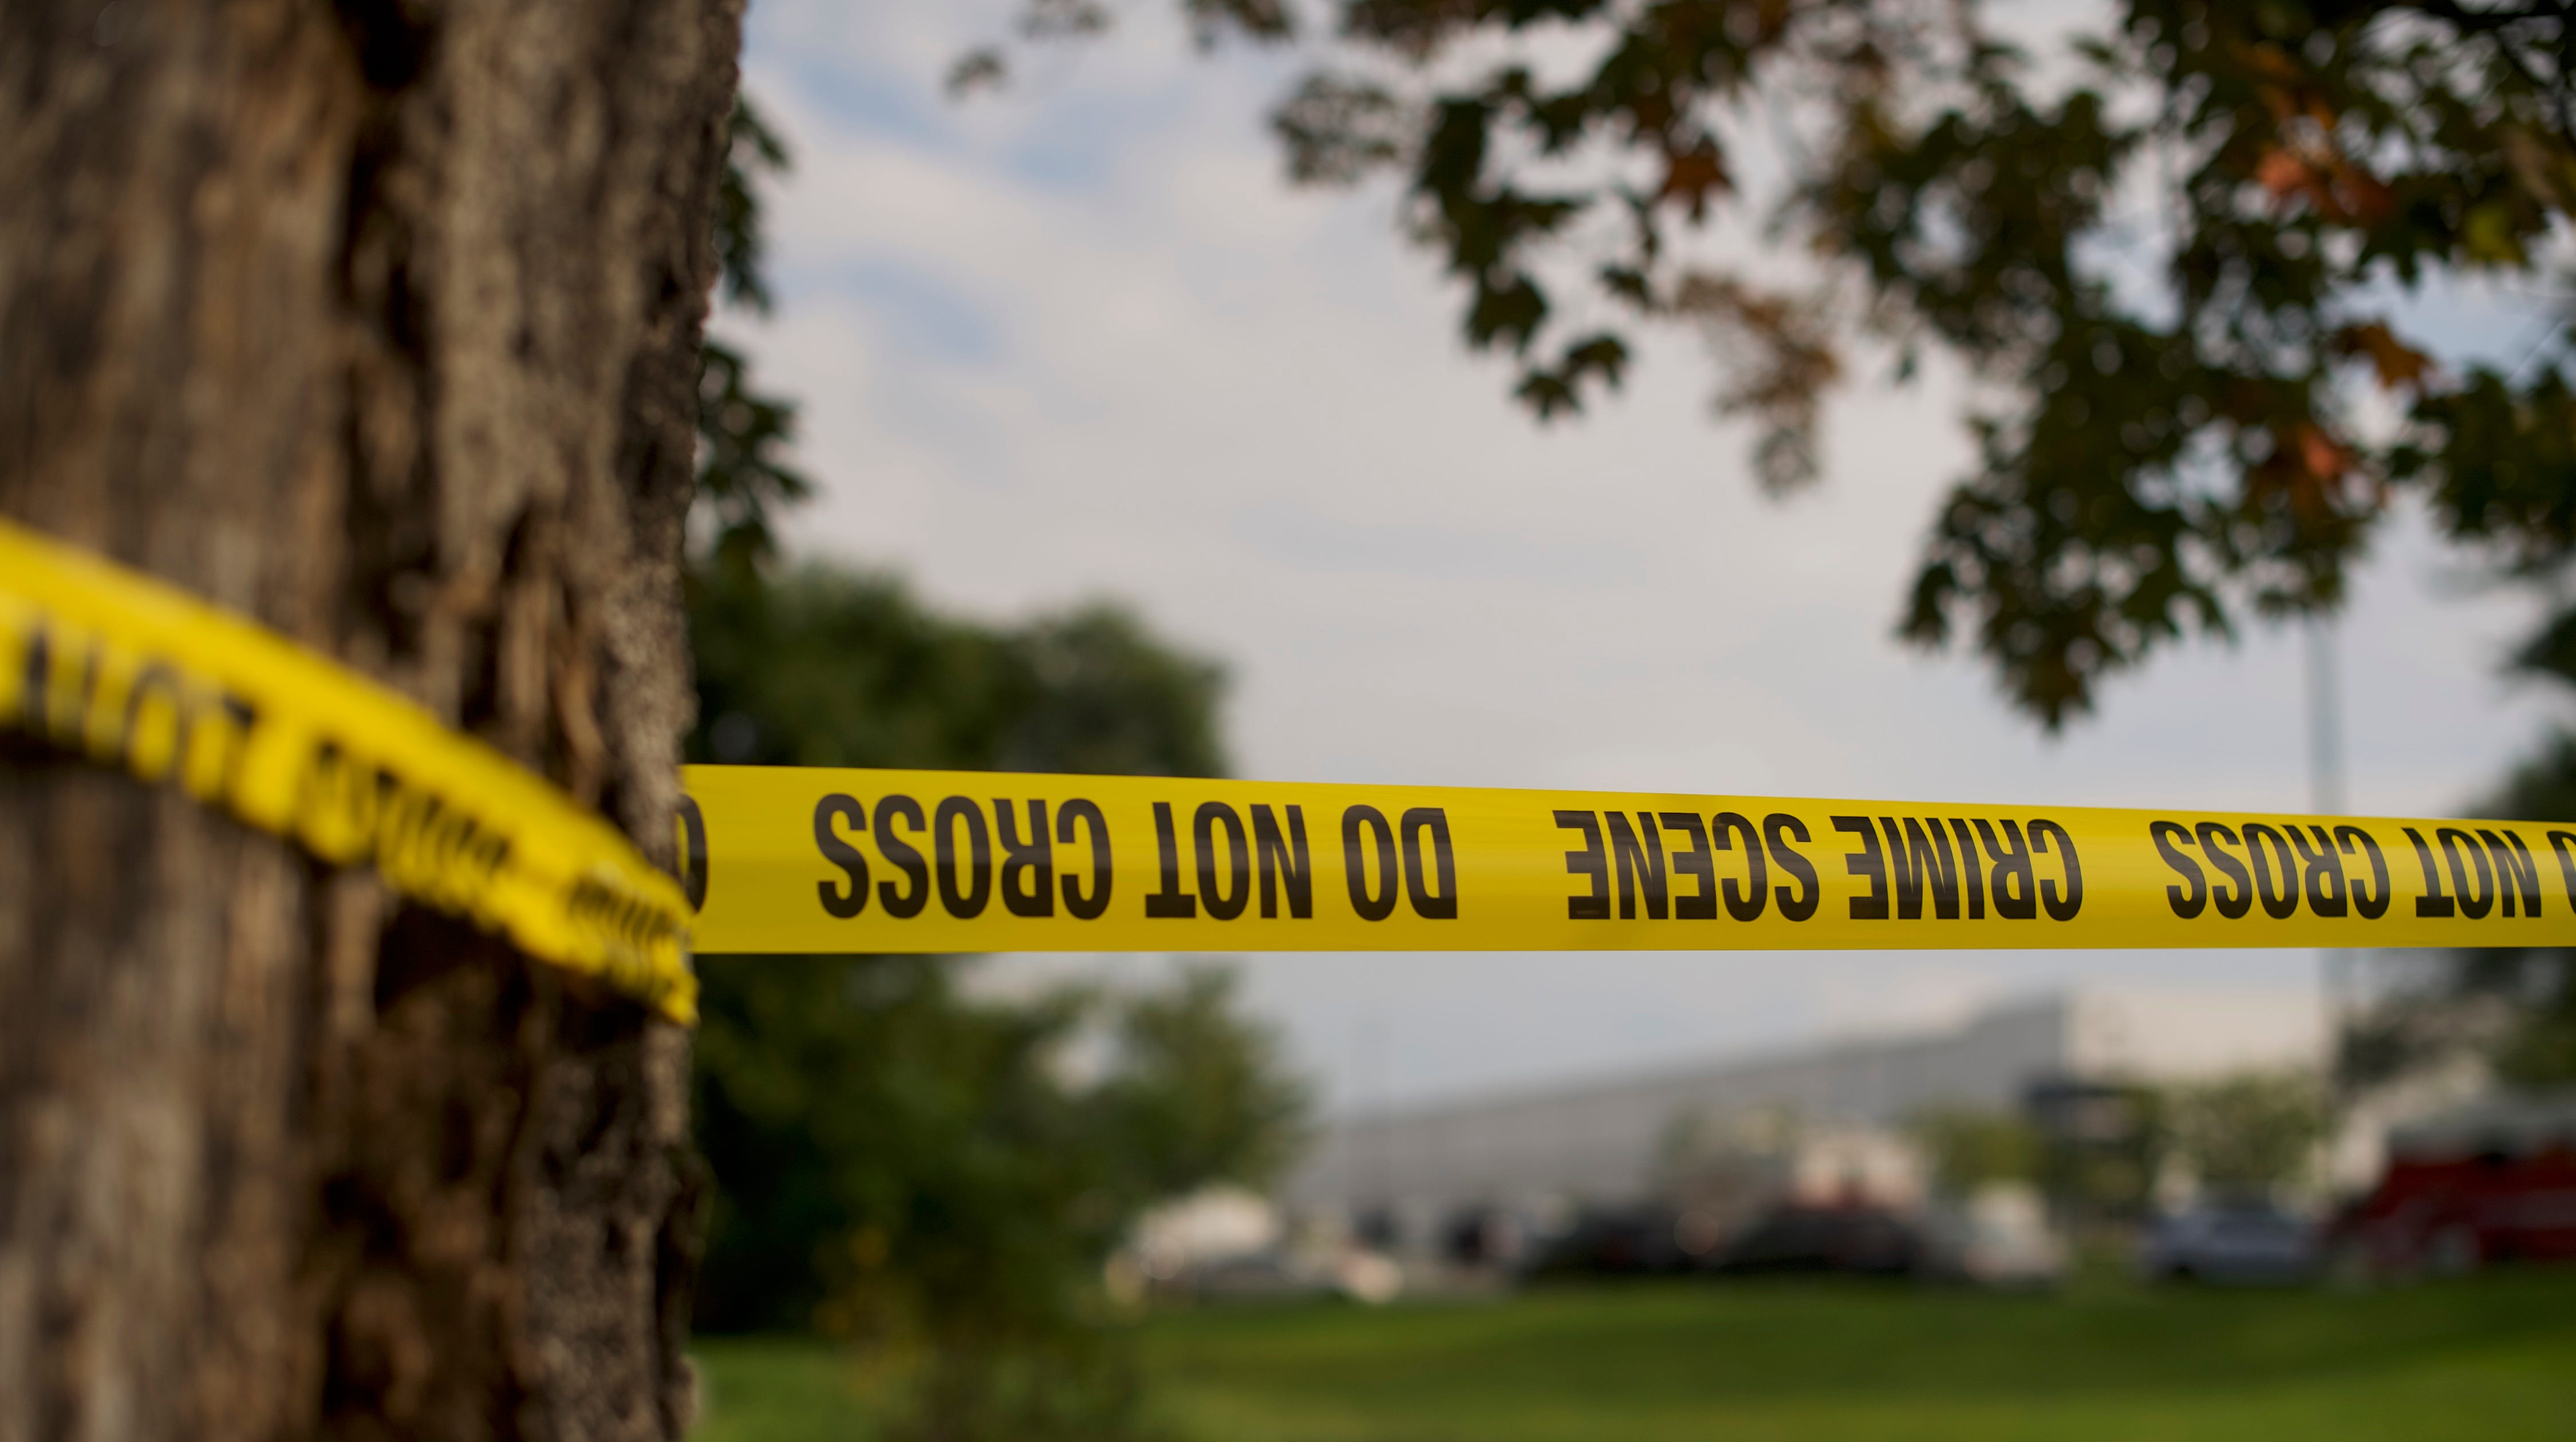 Crime-scene tape flutters in the wind in front of a Rite Aid Distribution Center, where multiple people were killed and injured in a shooting, on Sept. 20, 2018 in Aberdeen, Maryland.